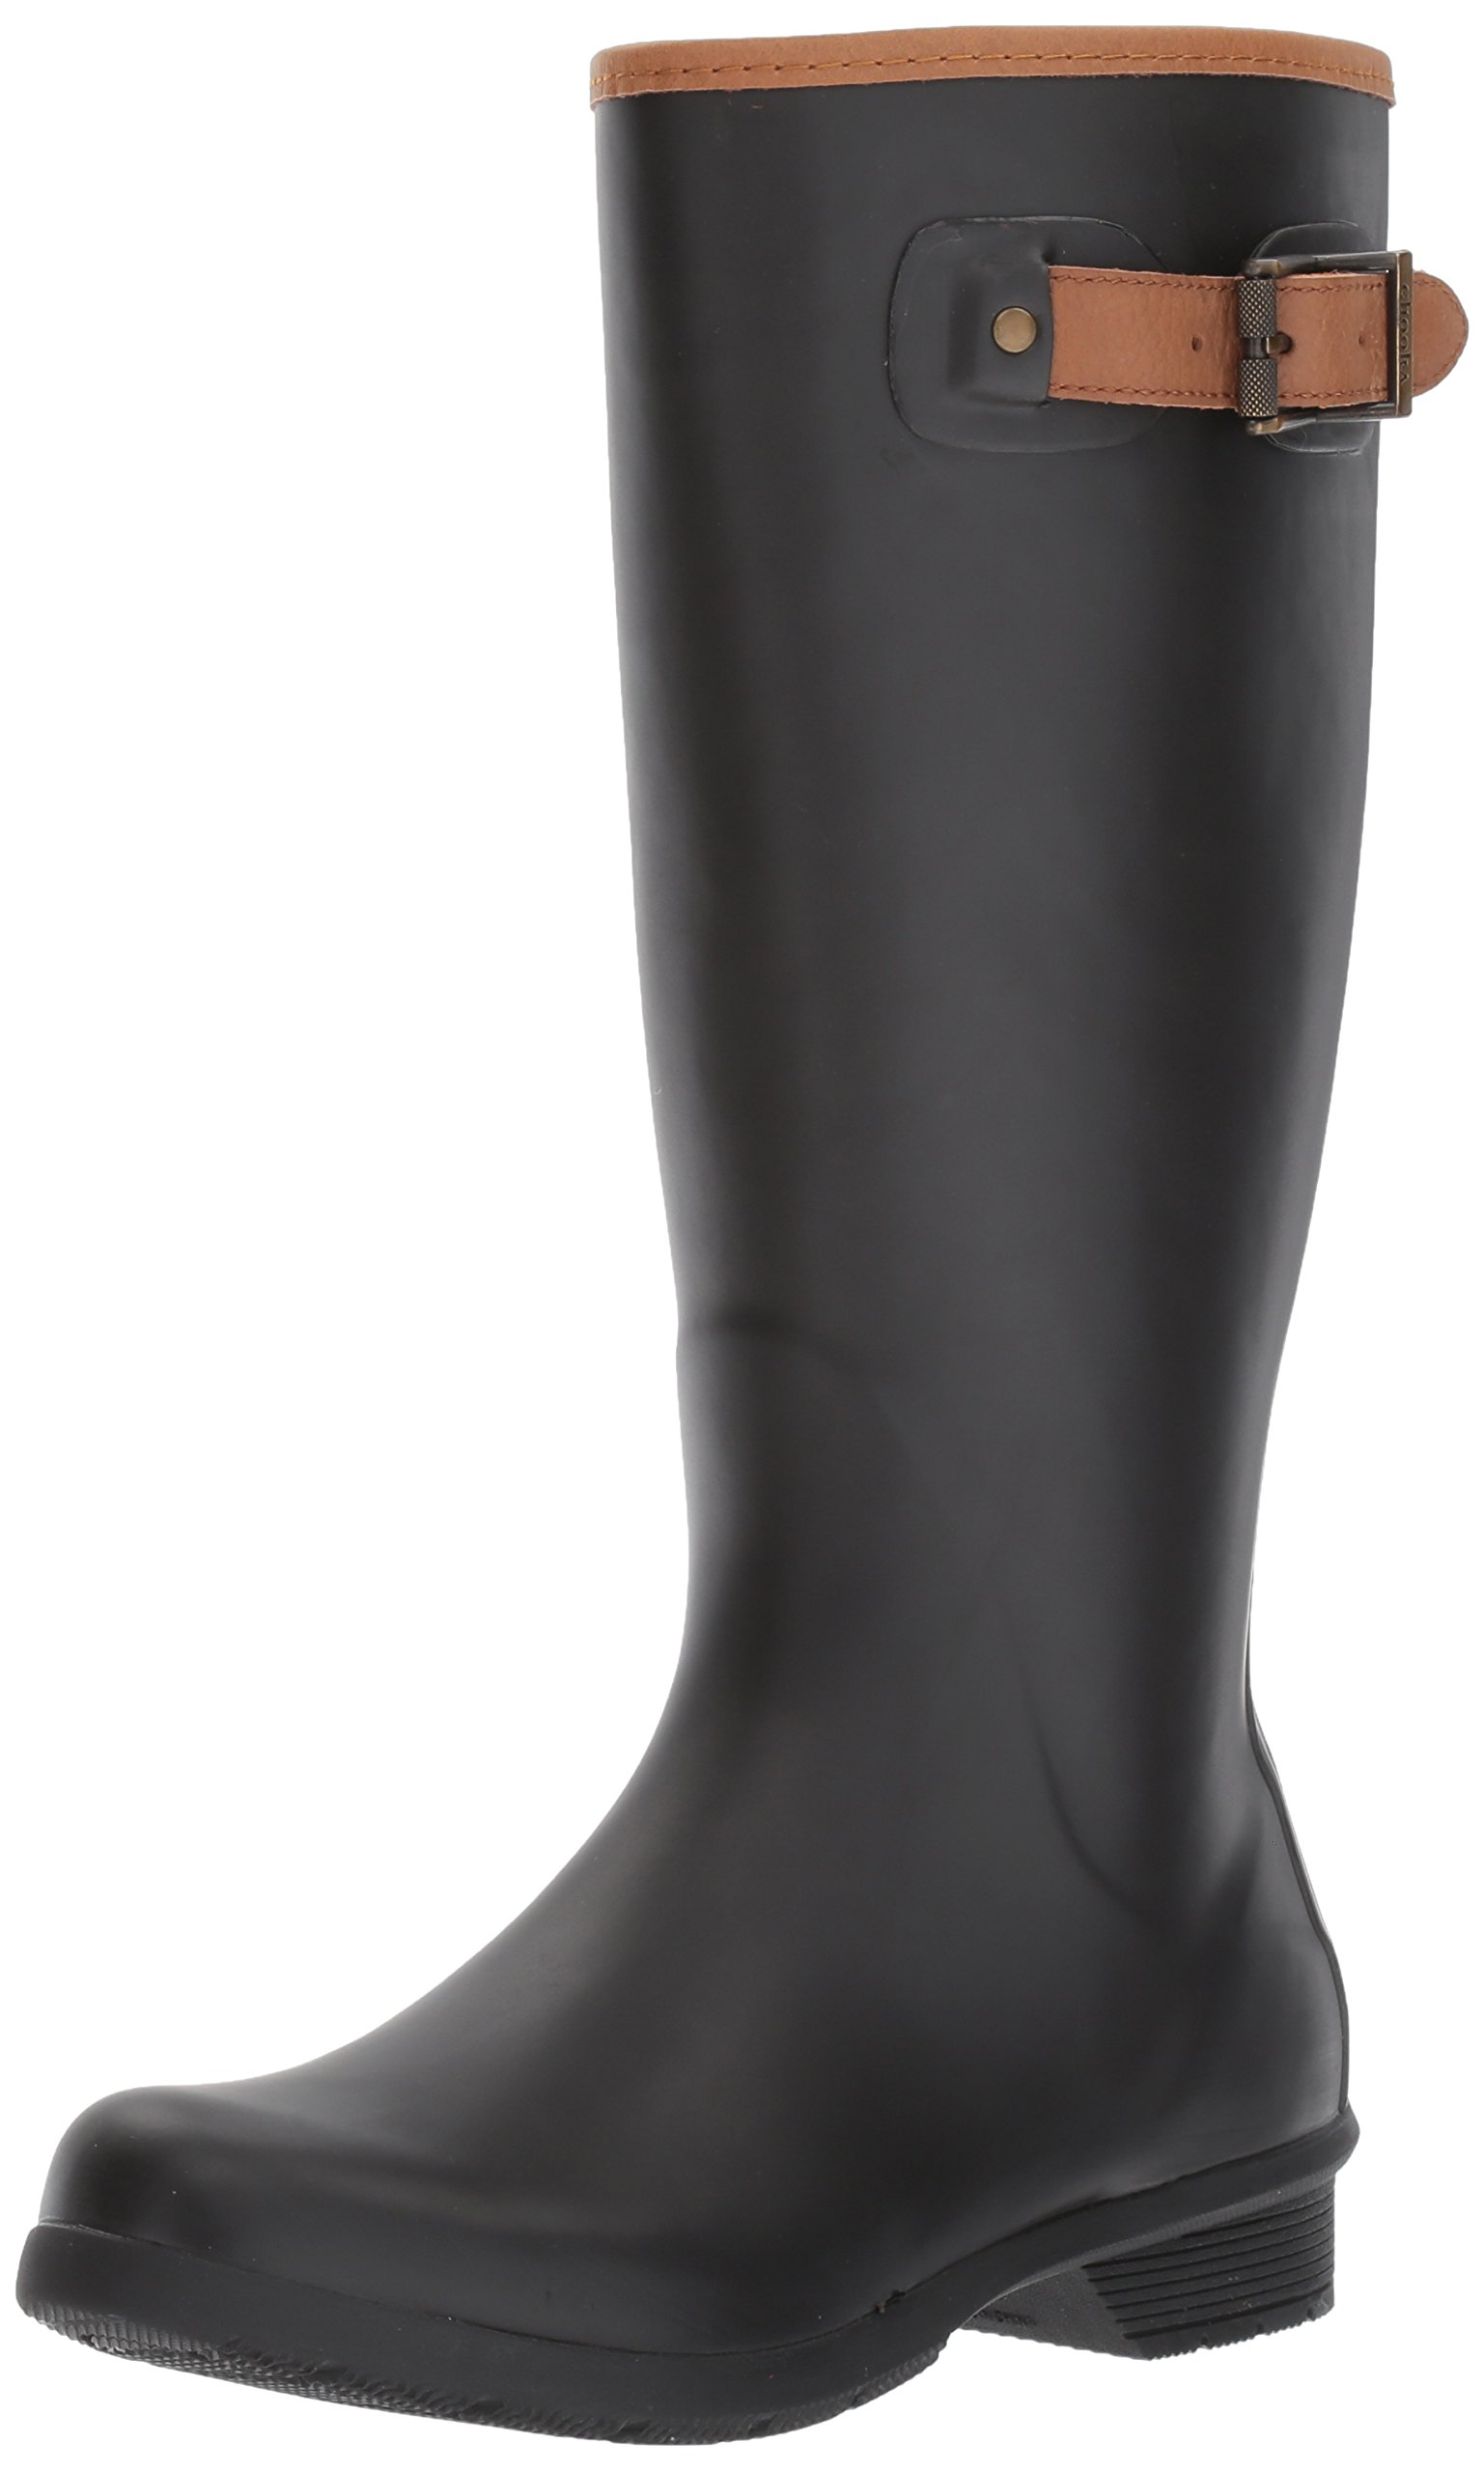 Chooka Women's Tall Memory Foam Rain Boot, Black, 7 M US